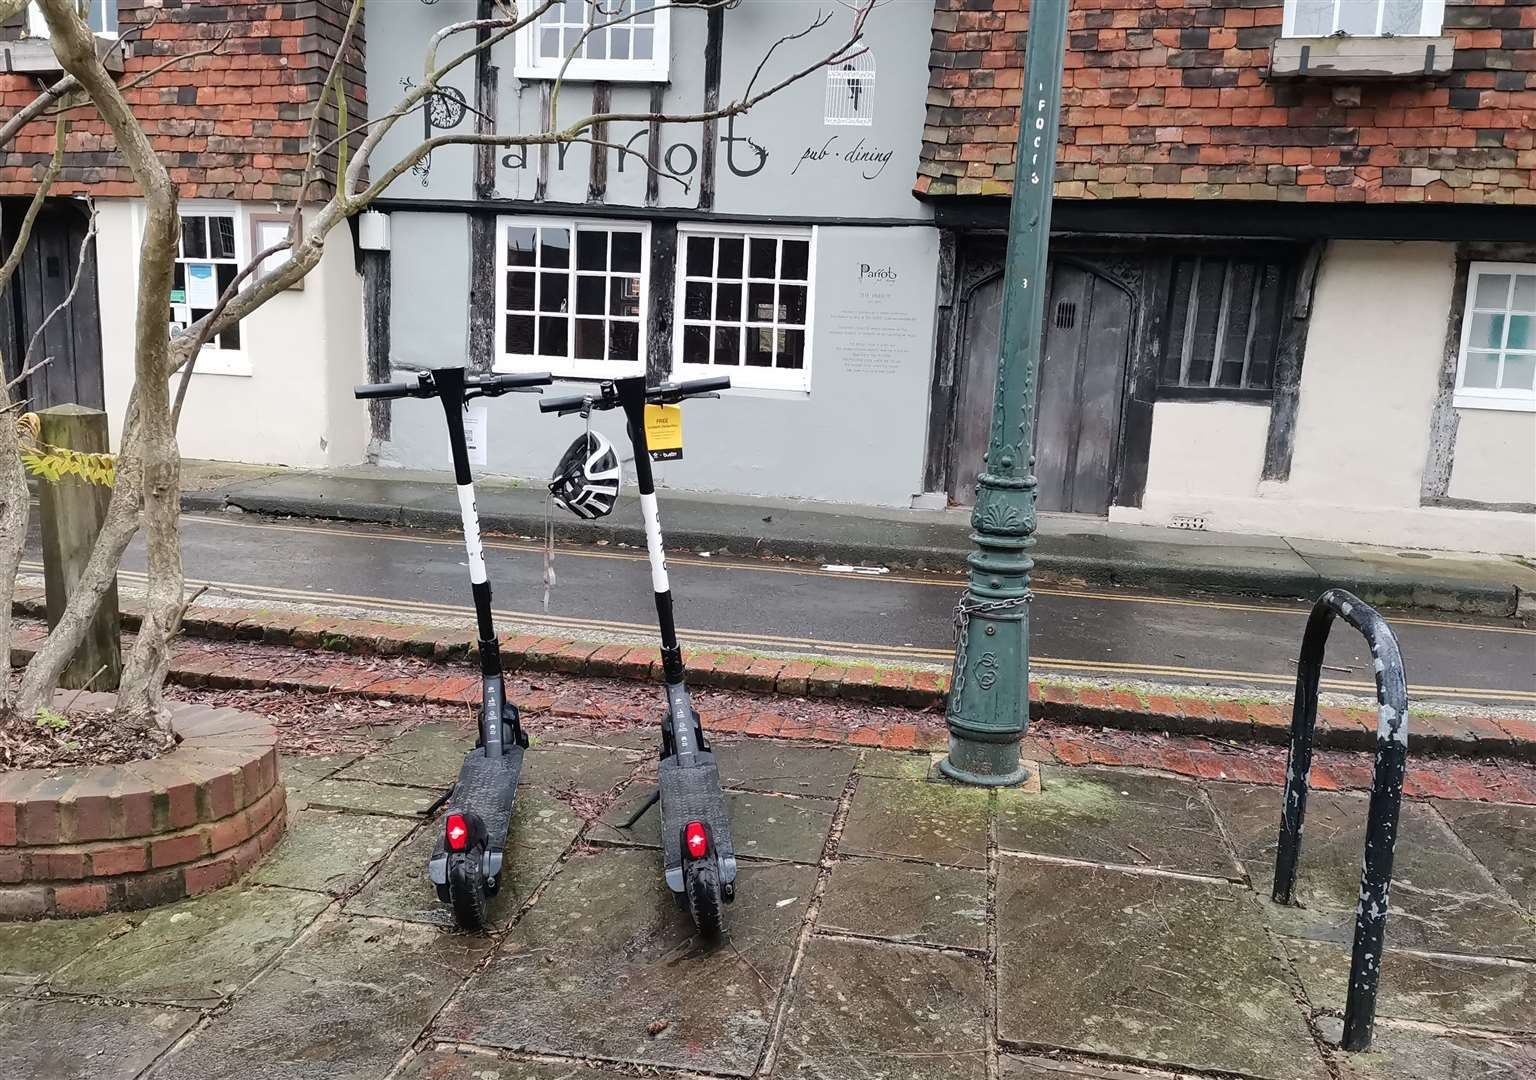 An electric scooter rental service is being trialled in Canterbury